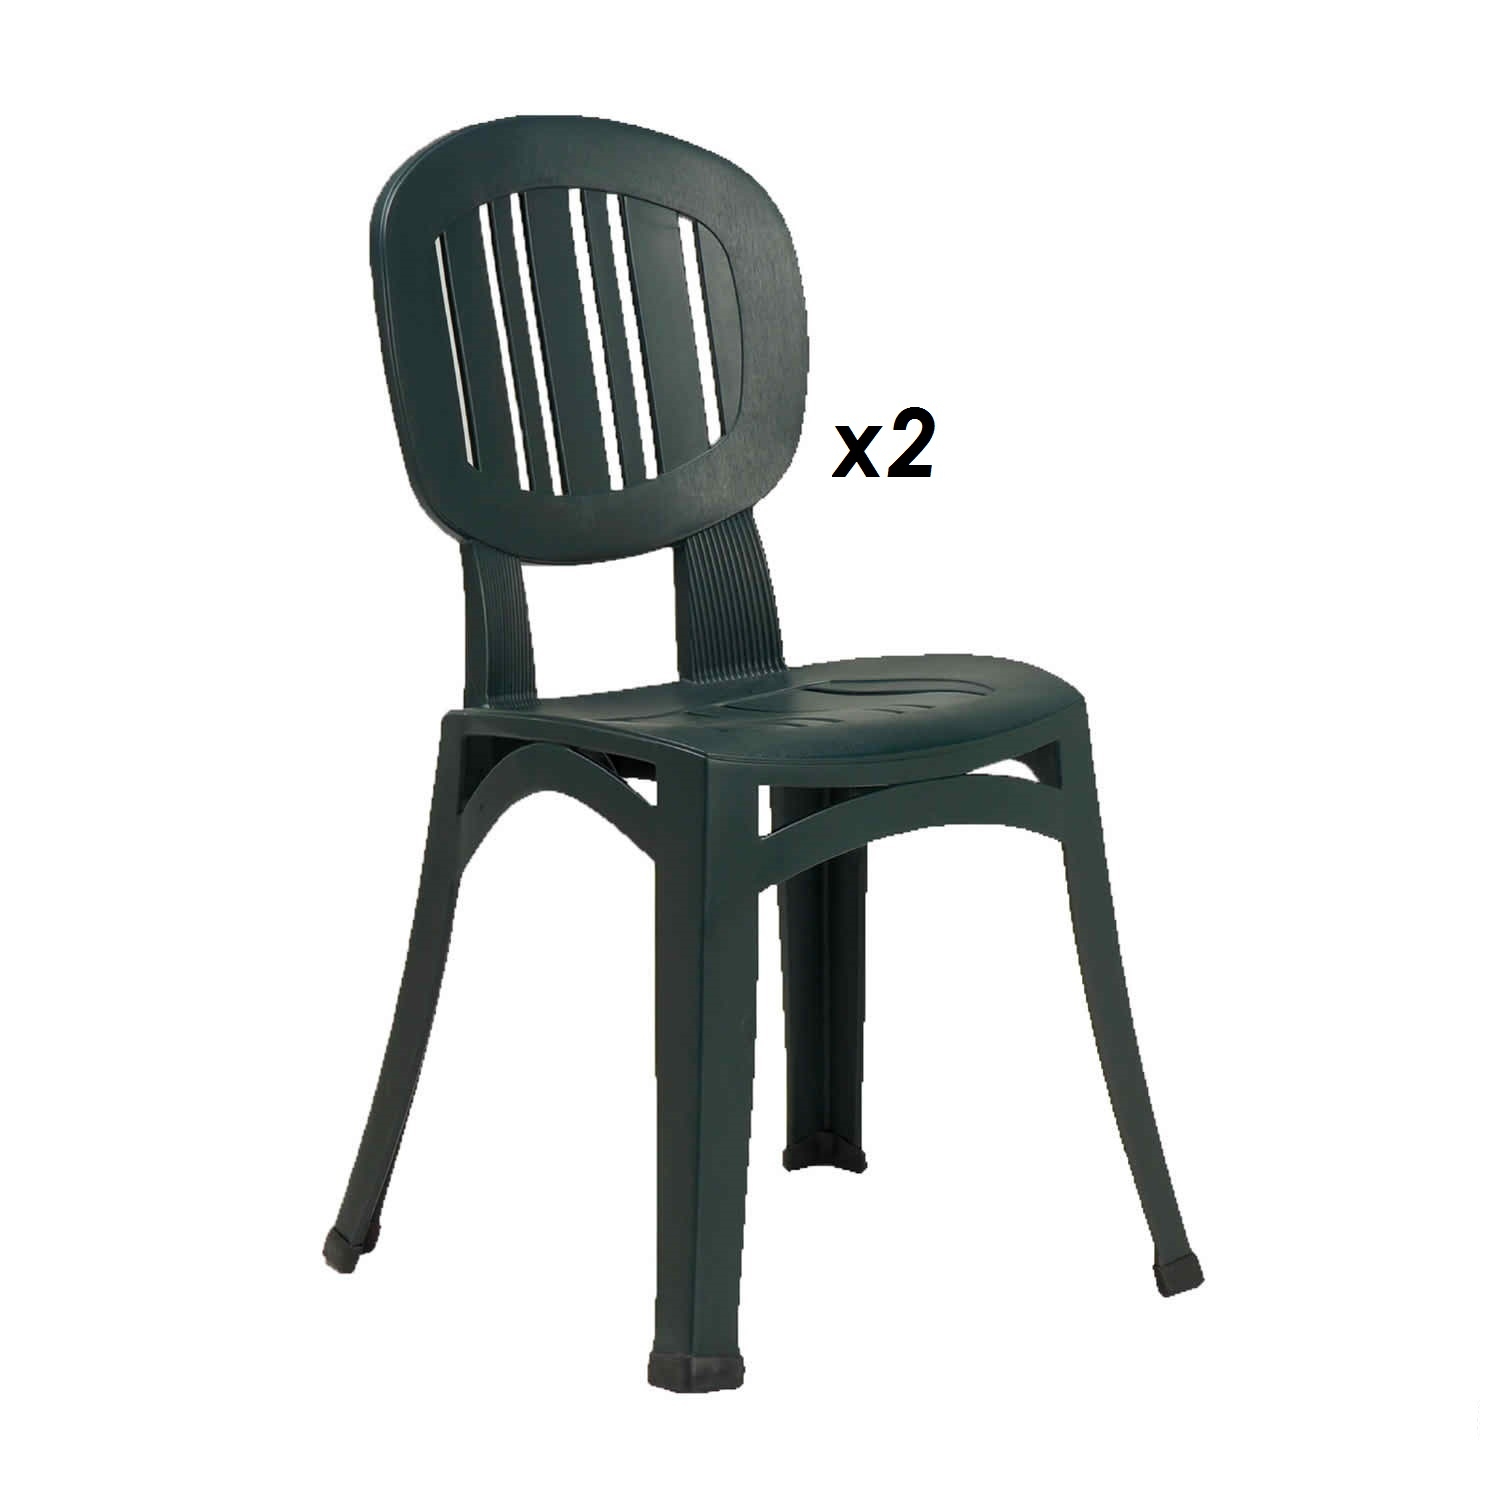 Photo of Europa europa leisure elba chair green -pack of 2-